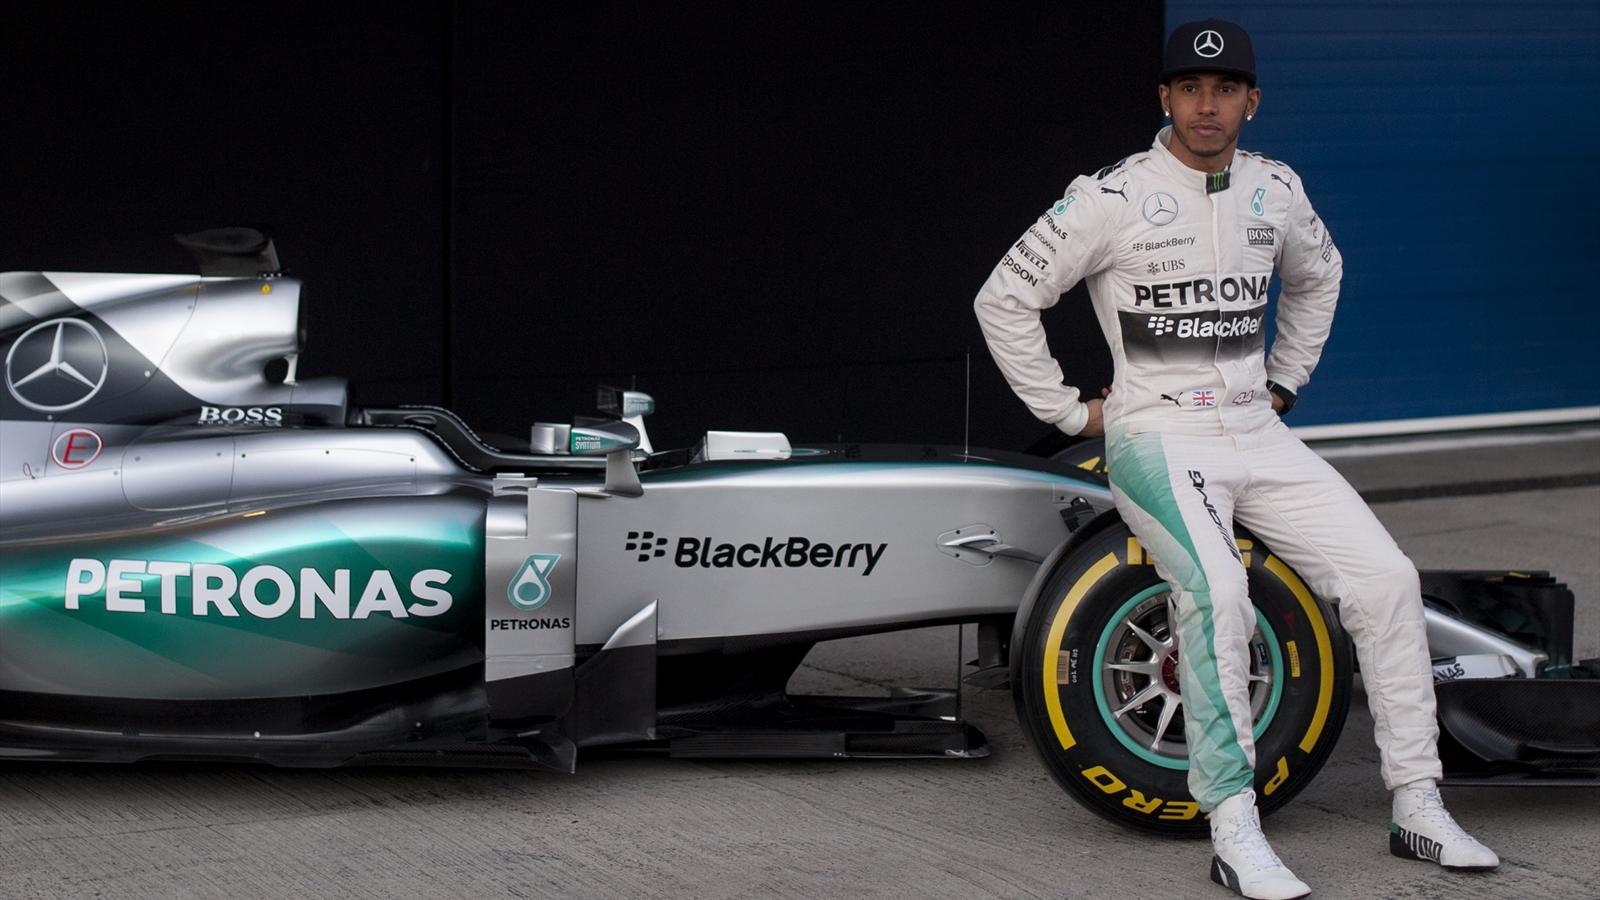 f1 2015 lewis hamilton mercedes un championnat a se construit saison 2015 formule. Black Bedroom Furniture Sets. Home Design Ideas